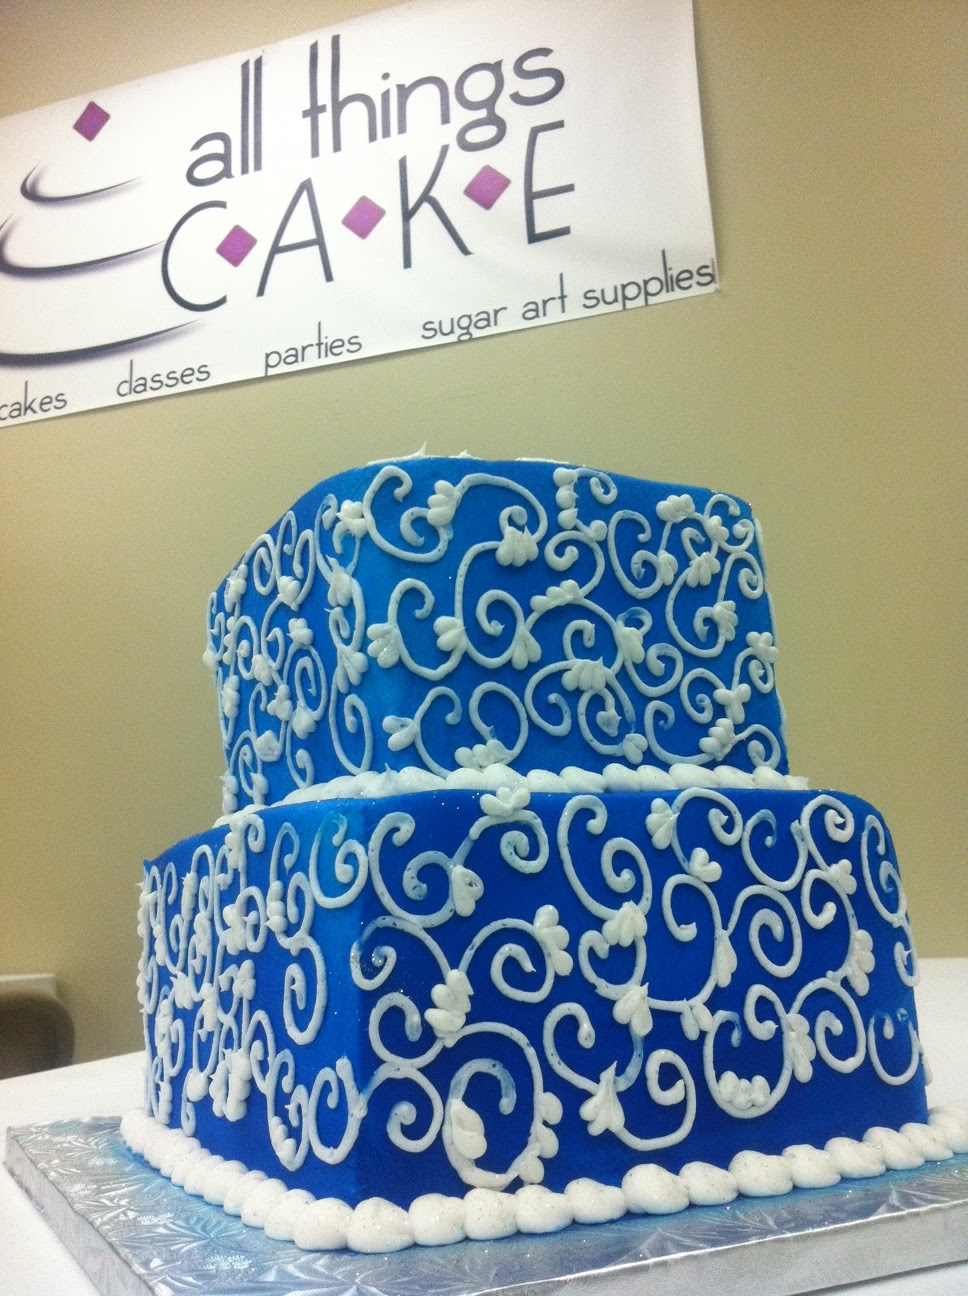 Cake Decorating Classes Near Tulsa : All Things Cake: Feeling Blue? Eat Cake!